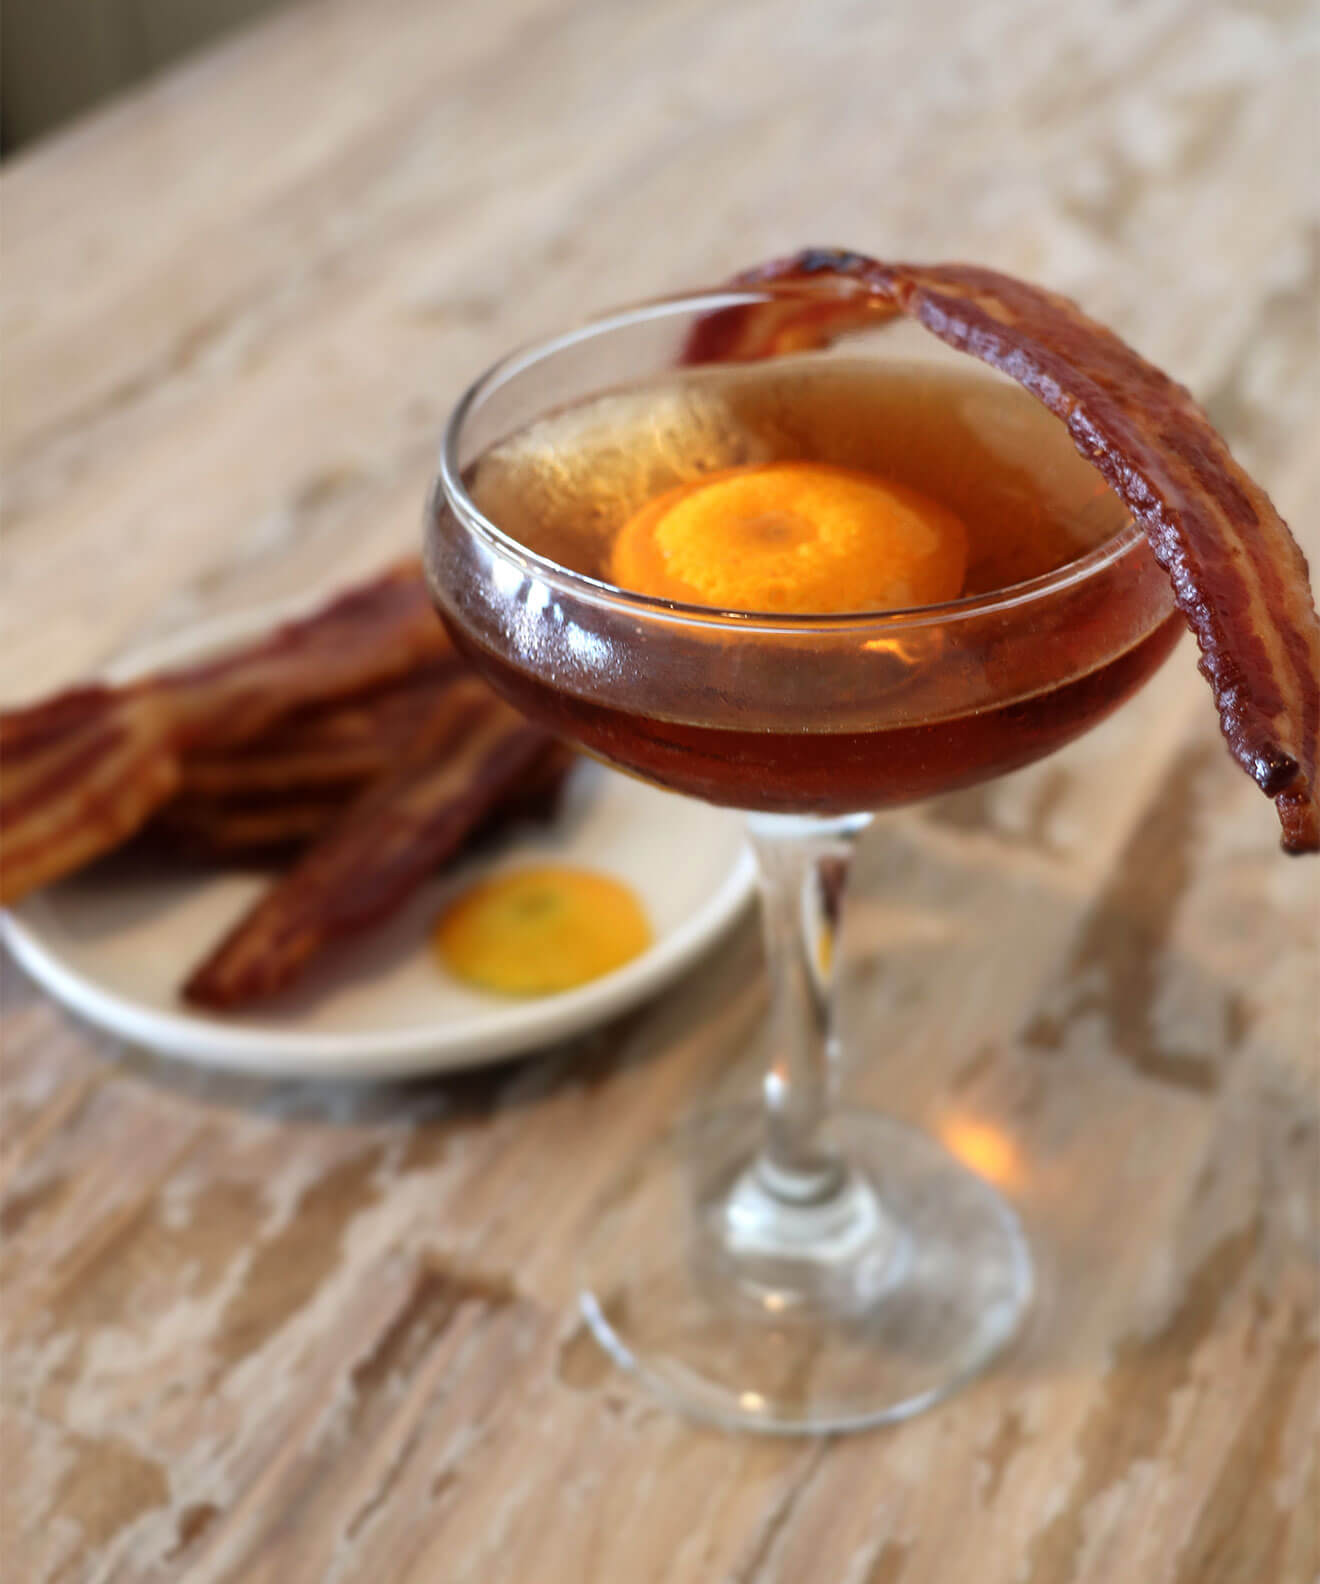 Maple Bacon Old Fashioned, cocktail with bacon garnish, breakfast on table